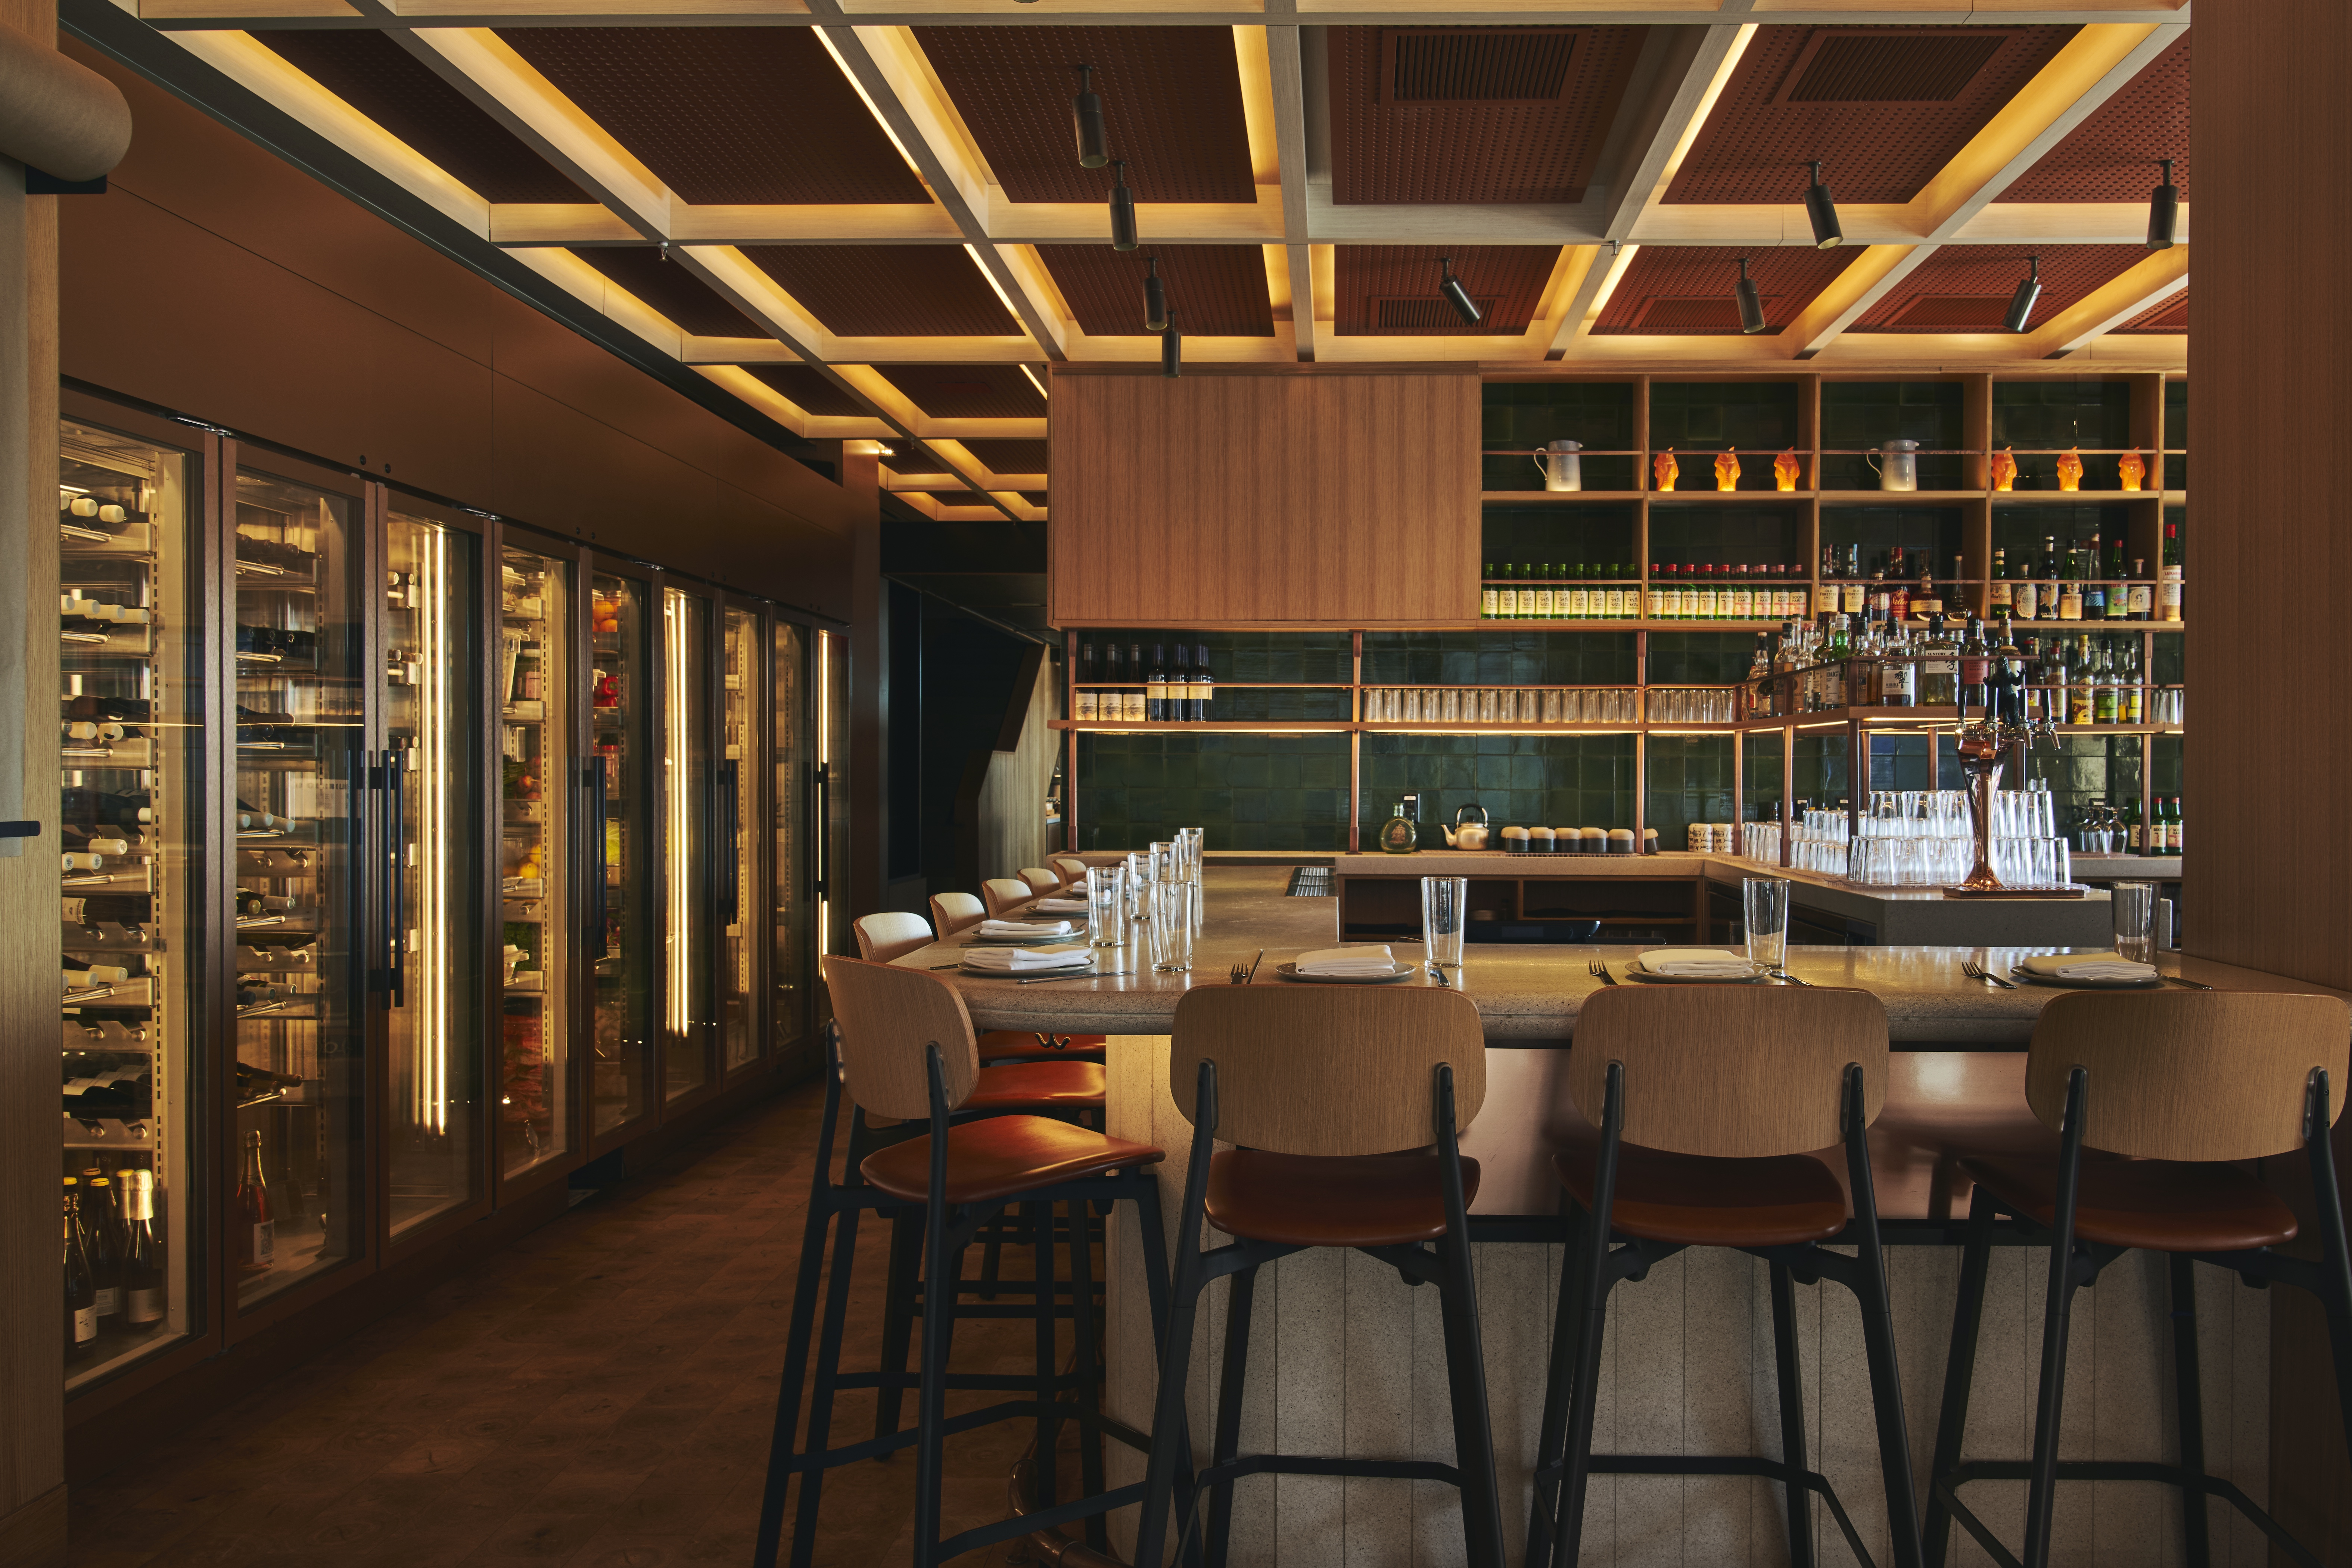 Tan stools with backs line the indoor bar at Momofuku Ssam Bar; warm lights shine from ceiling panels above